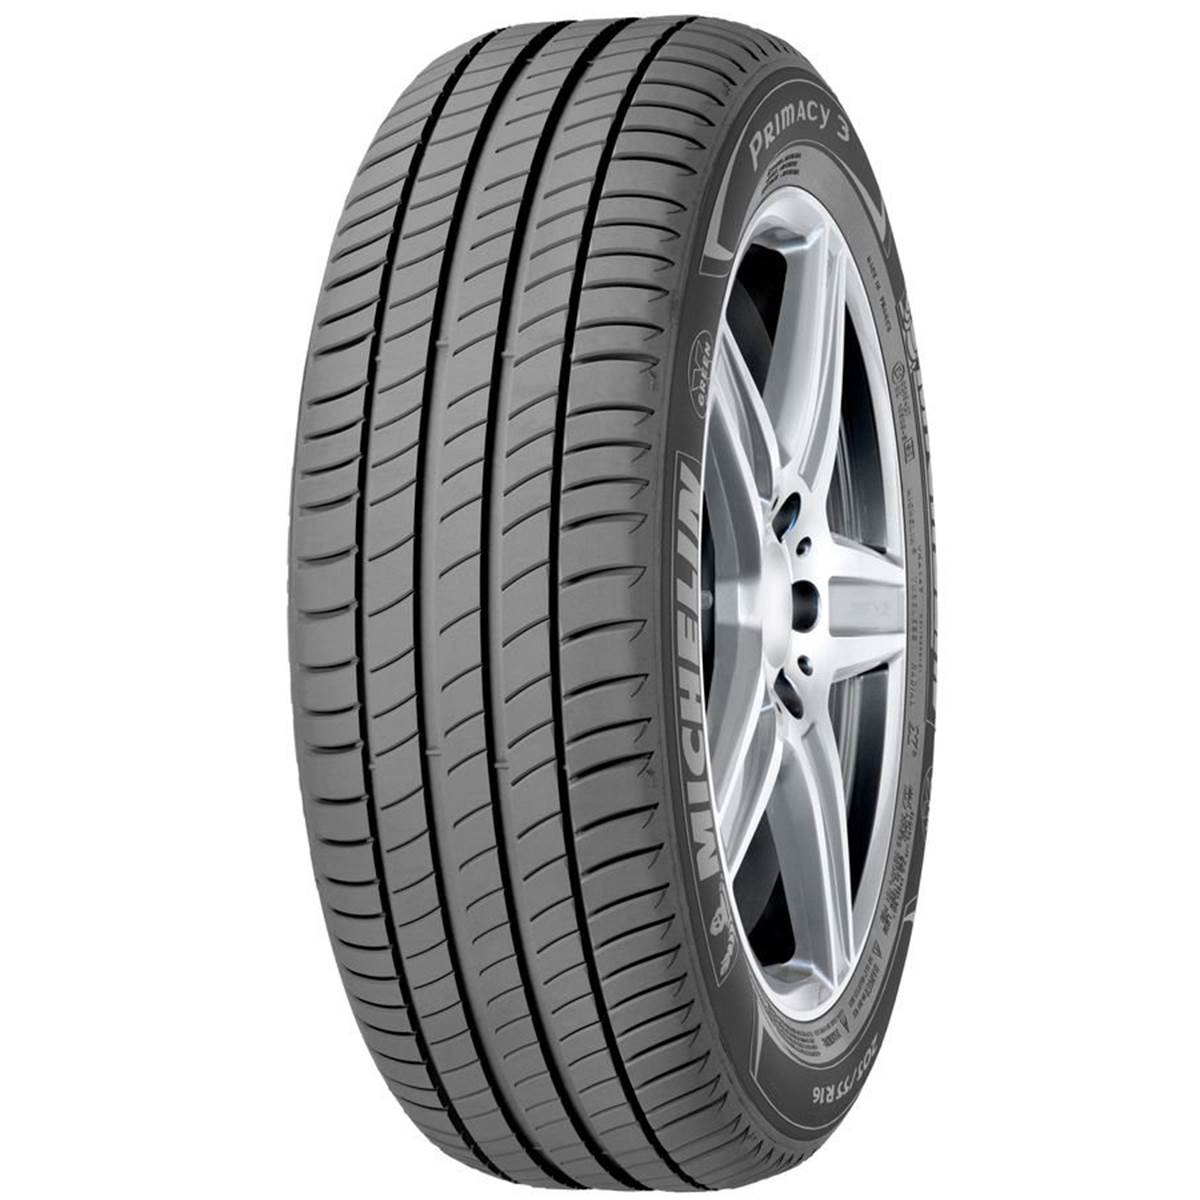 Pneu Michelin 225/50R17 94W Primacy 3